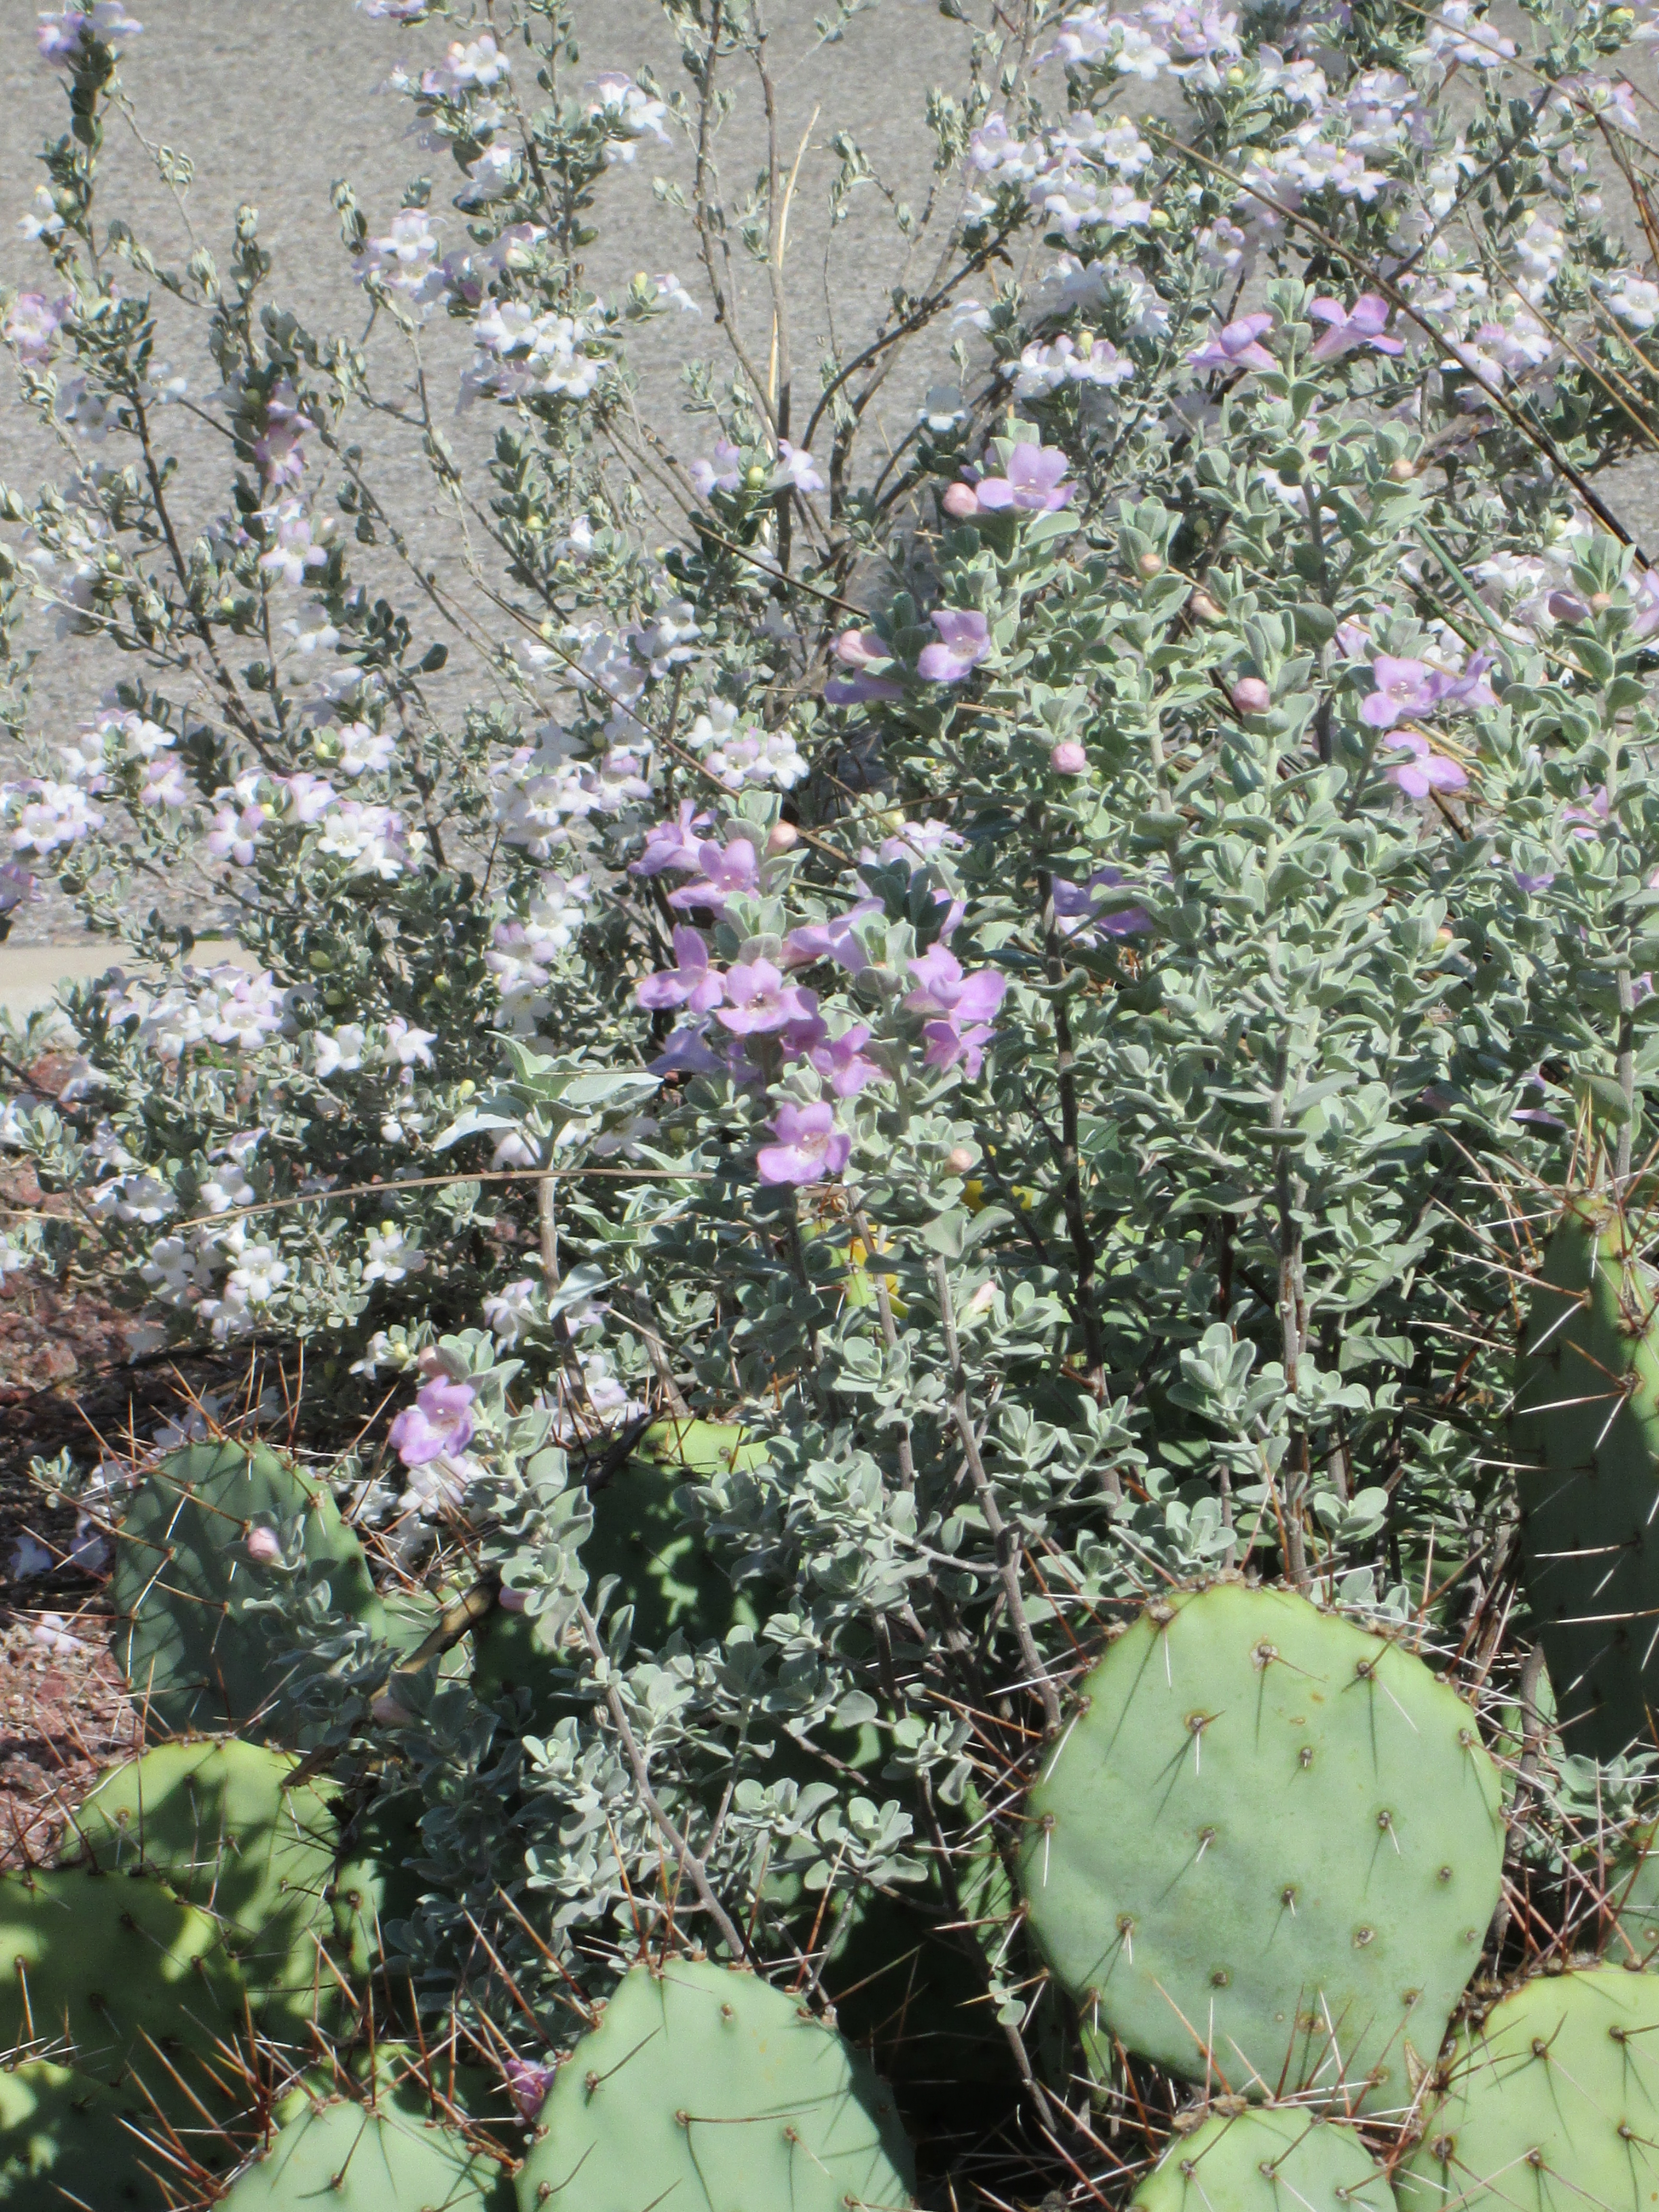 Sage With Prickley Pear Cactus